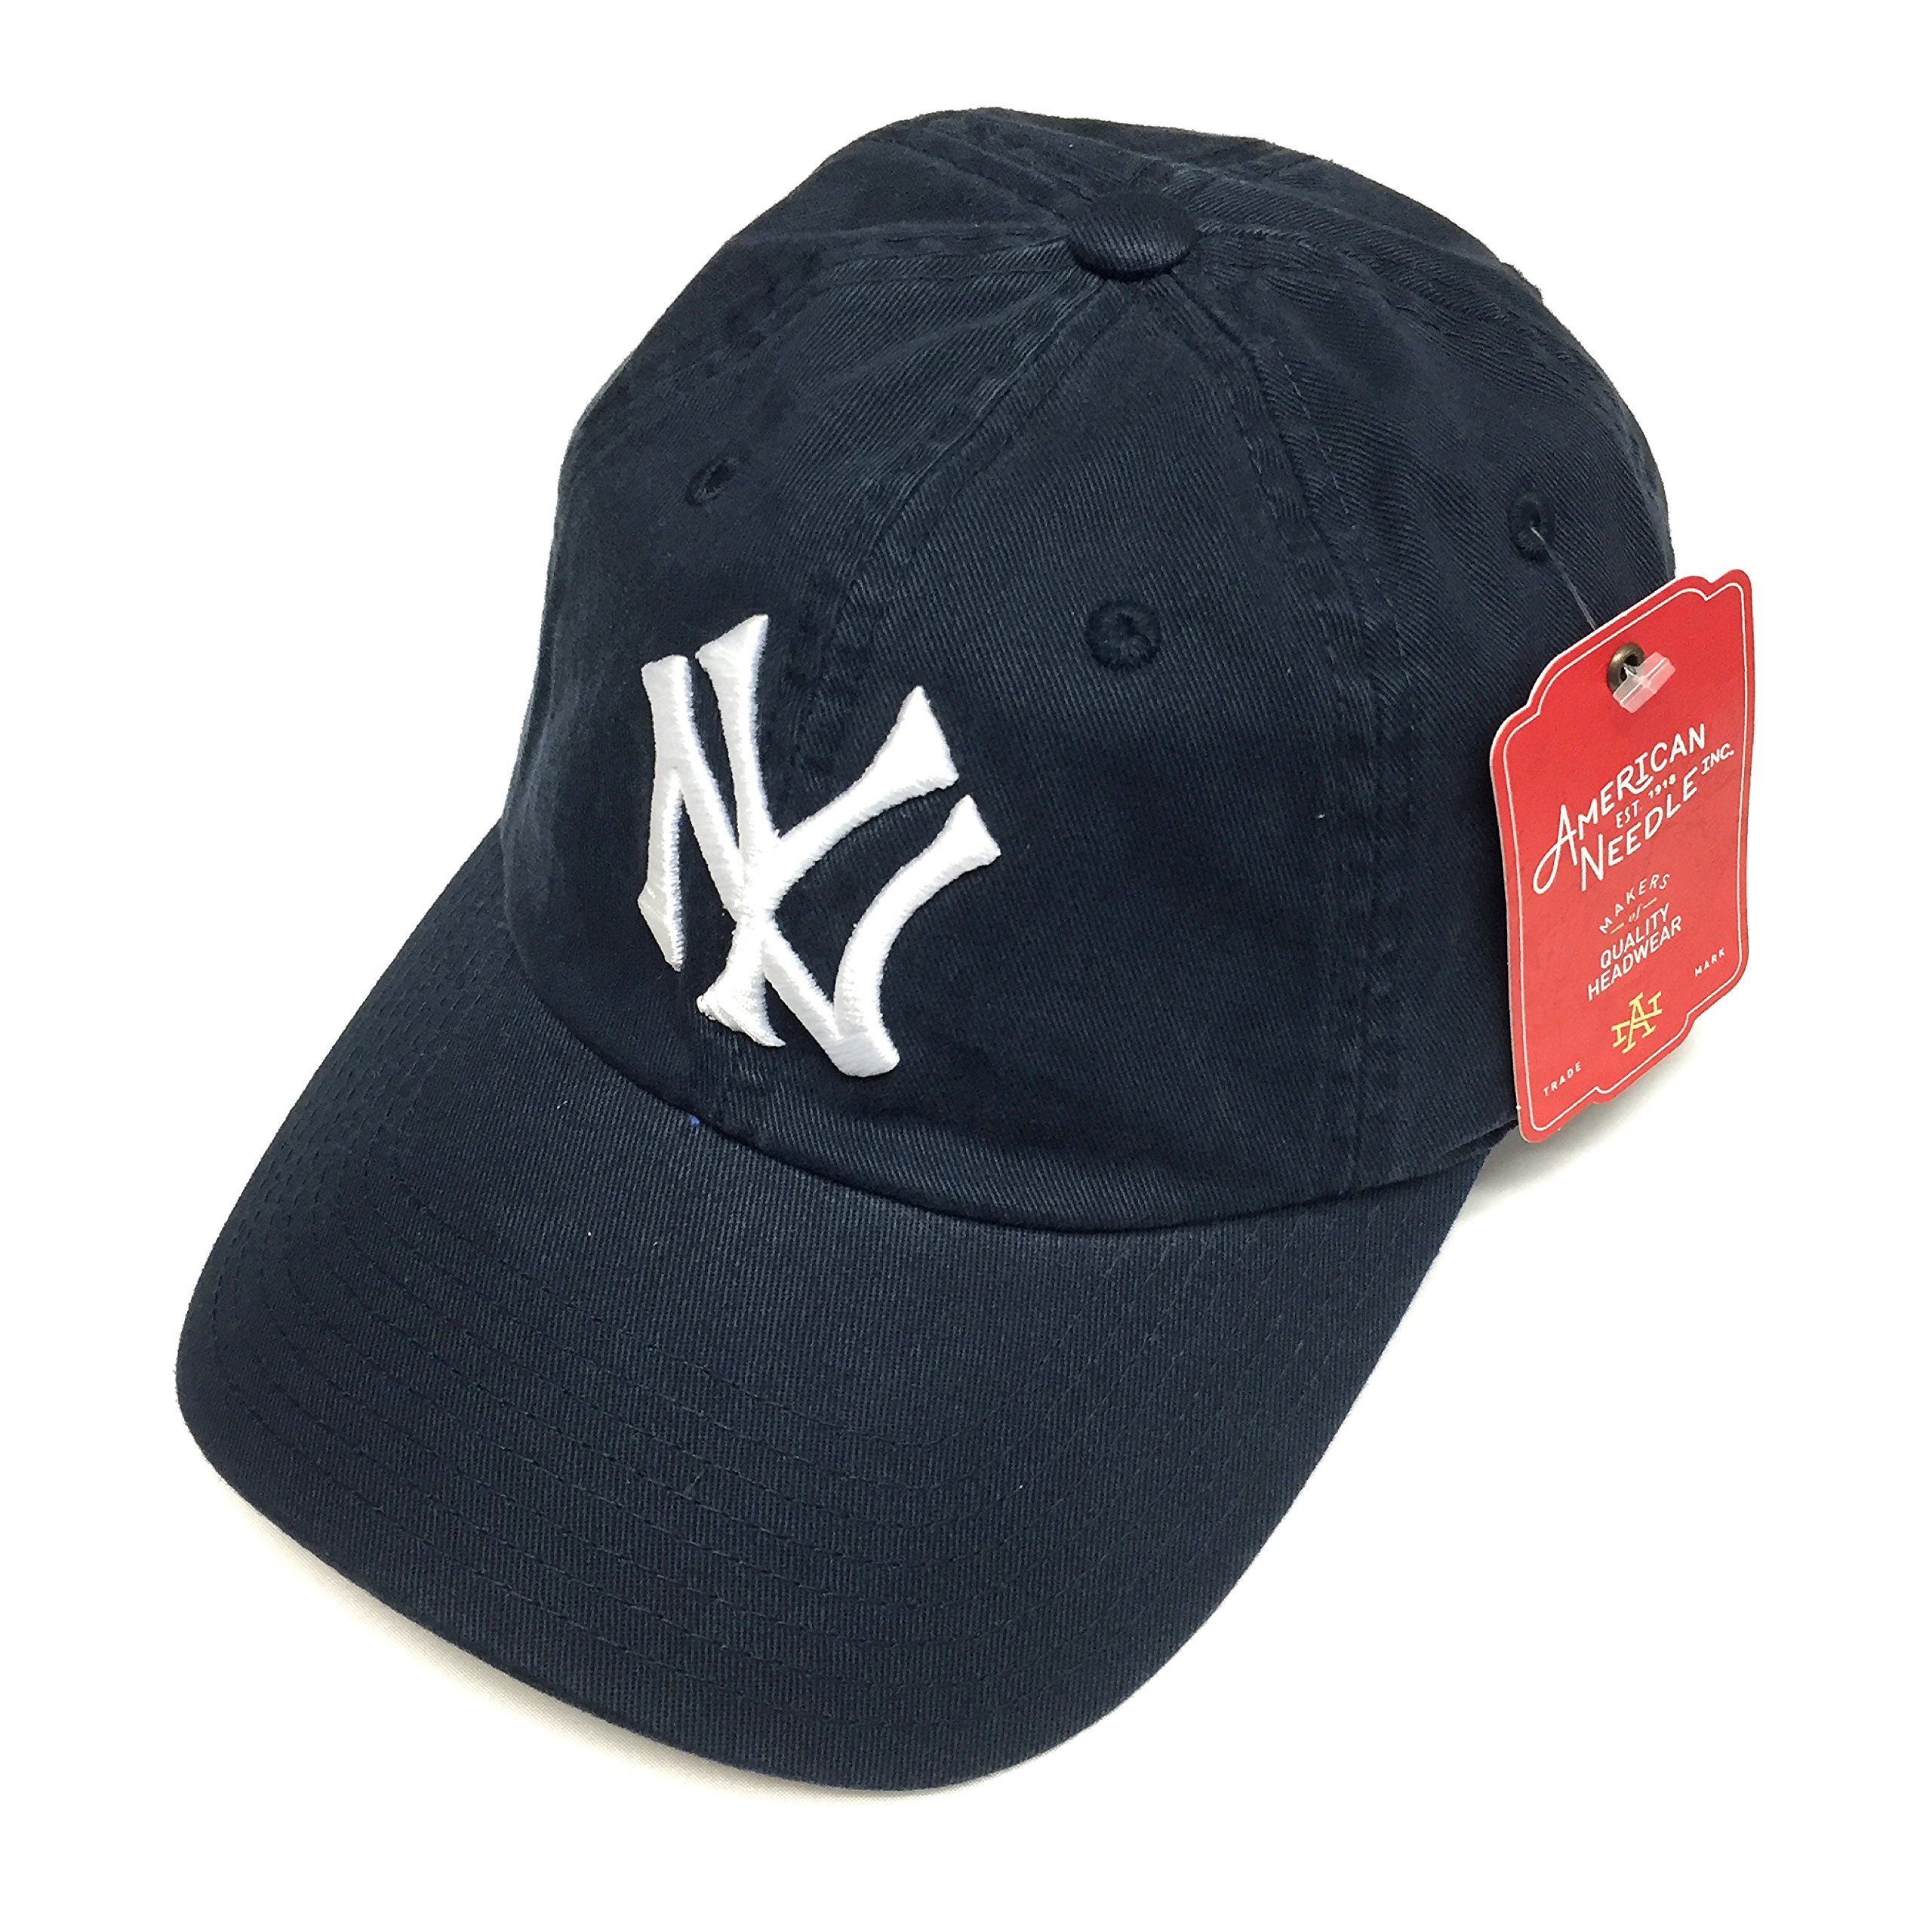 3048999f6a4 Get Quotations · American Needle MLB New York Yankees Navy Team BallPark  Adjustable Cap